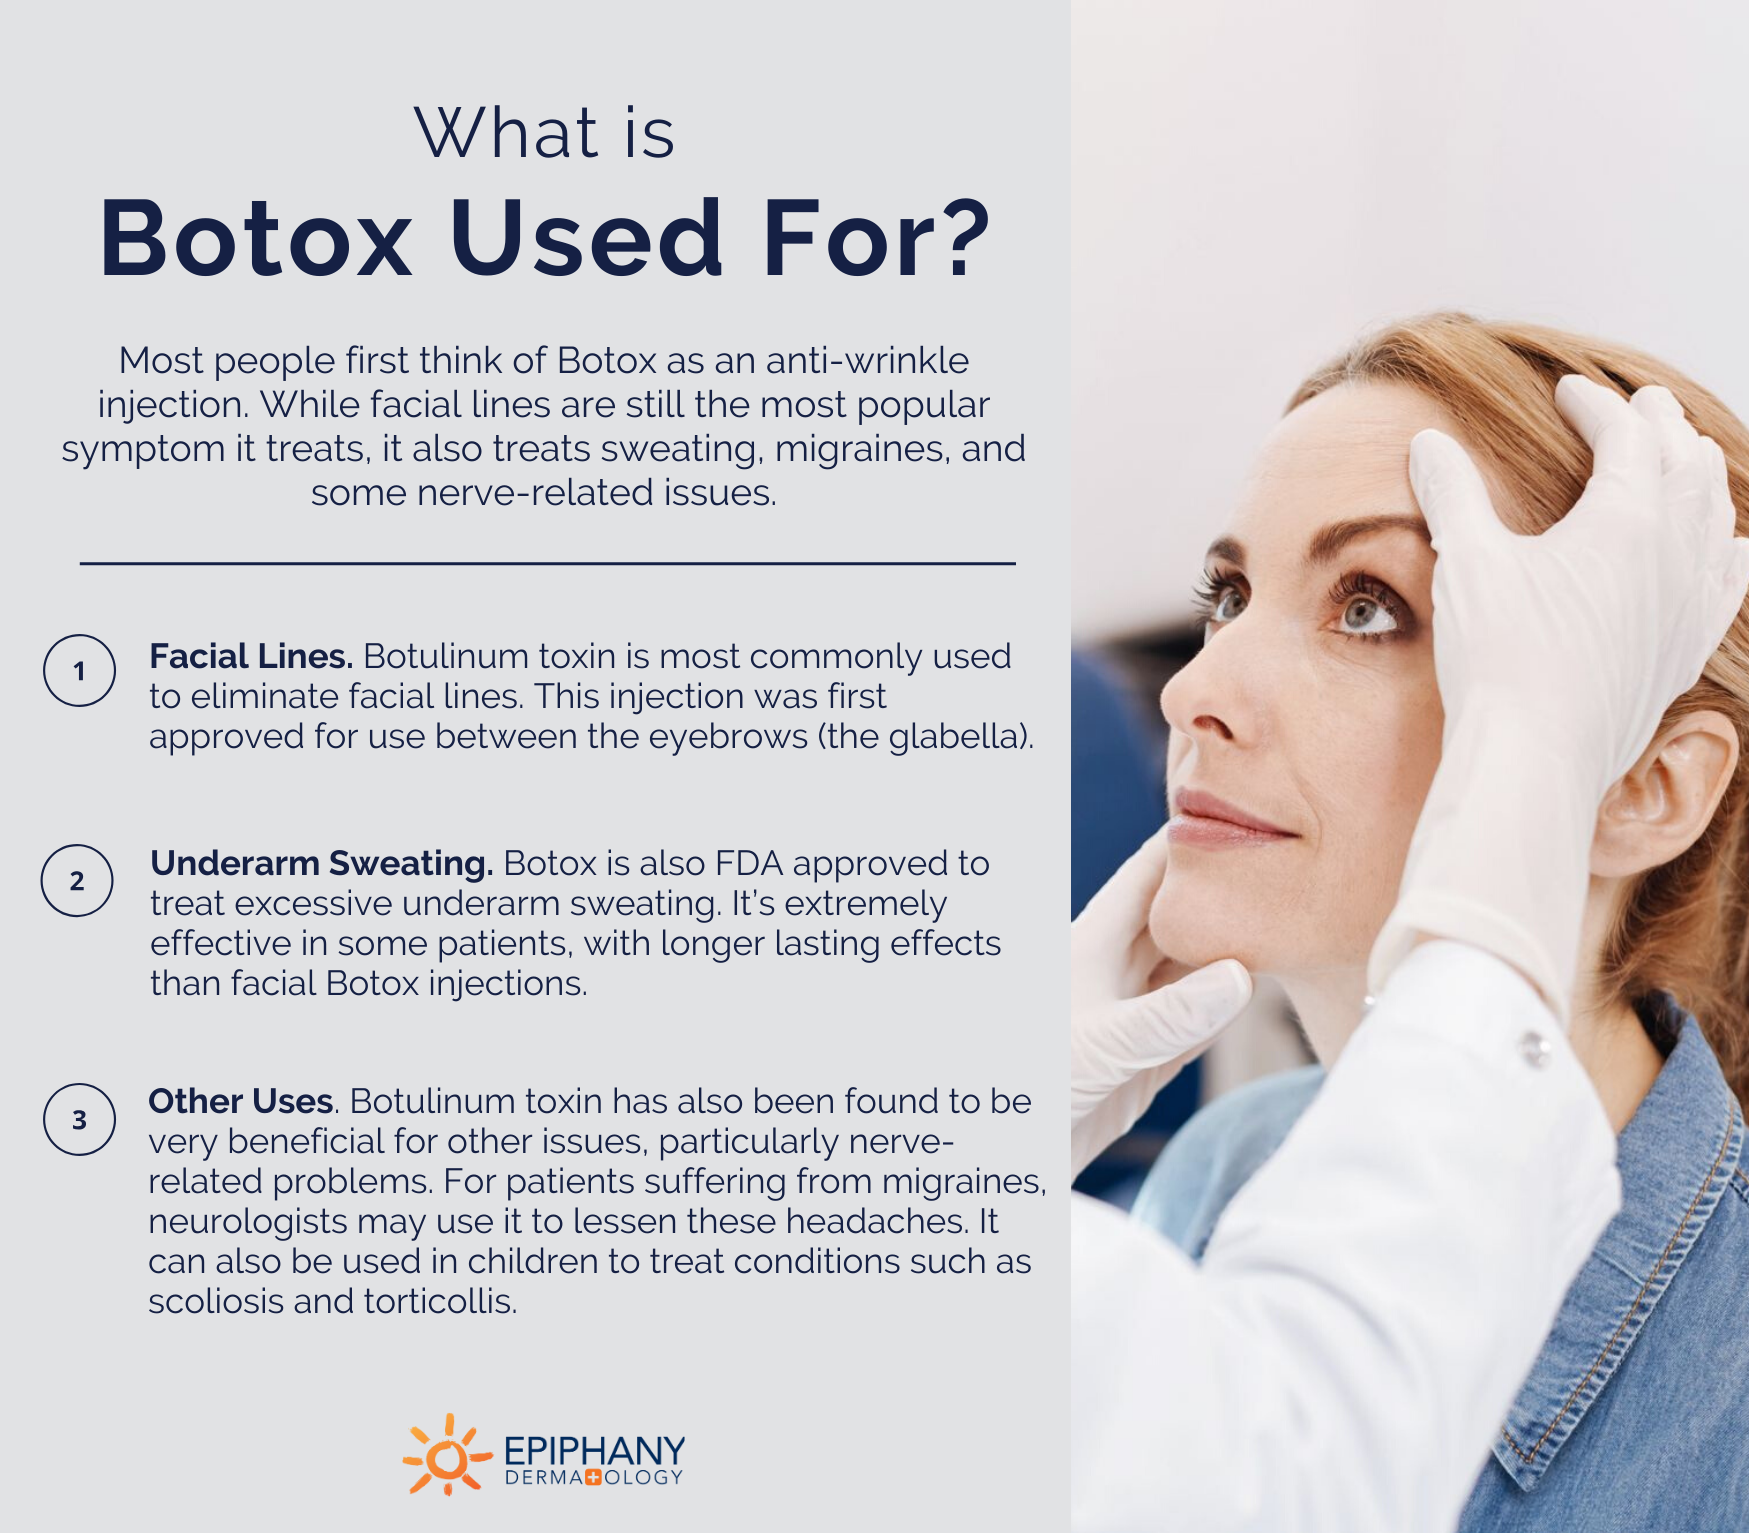 What is botox used for